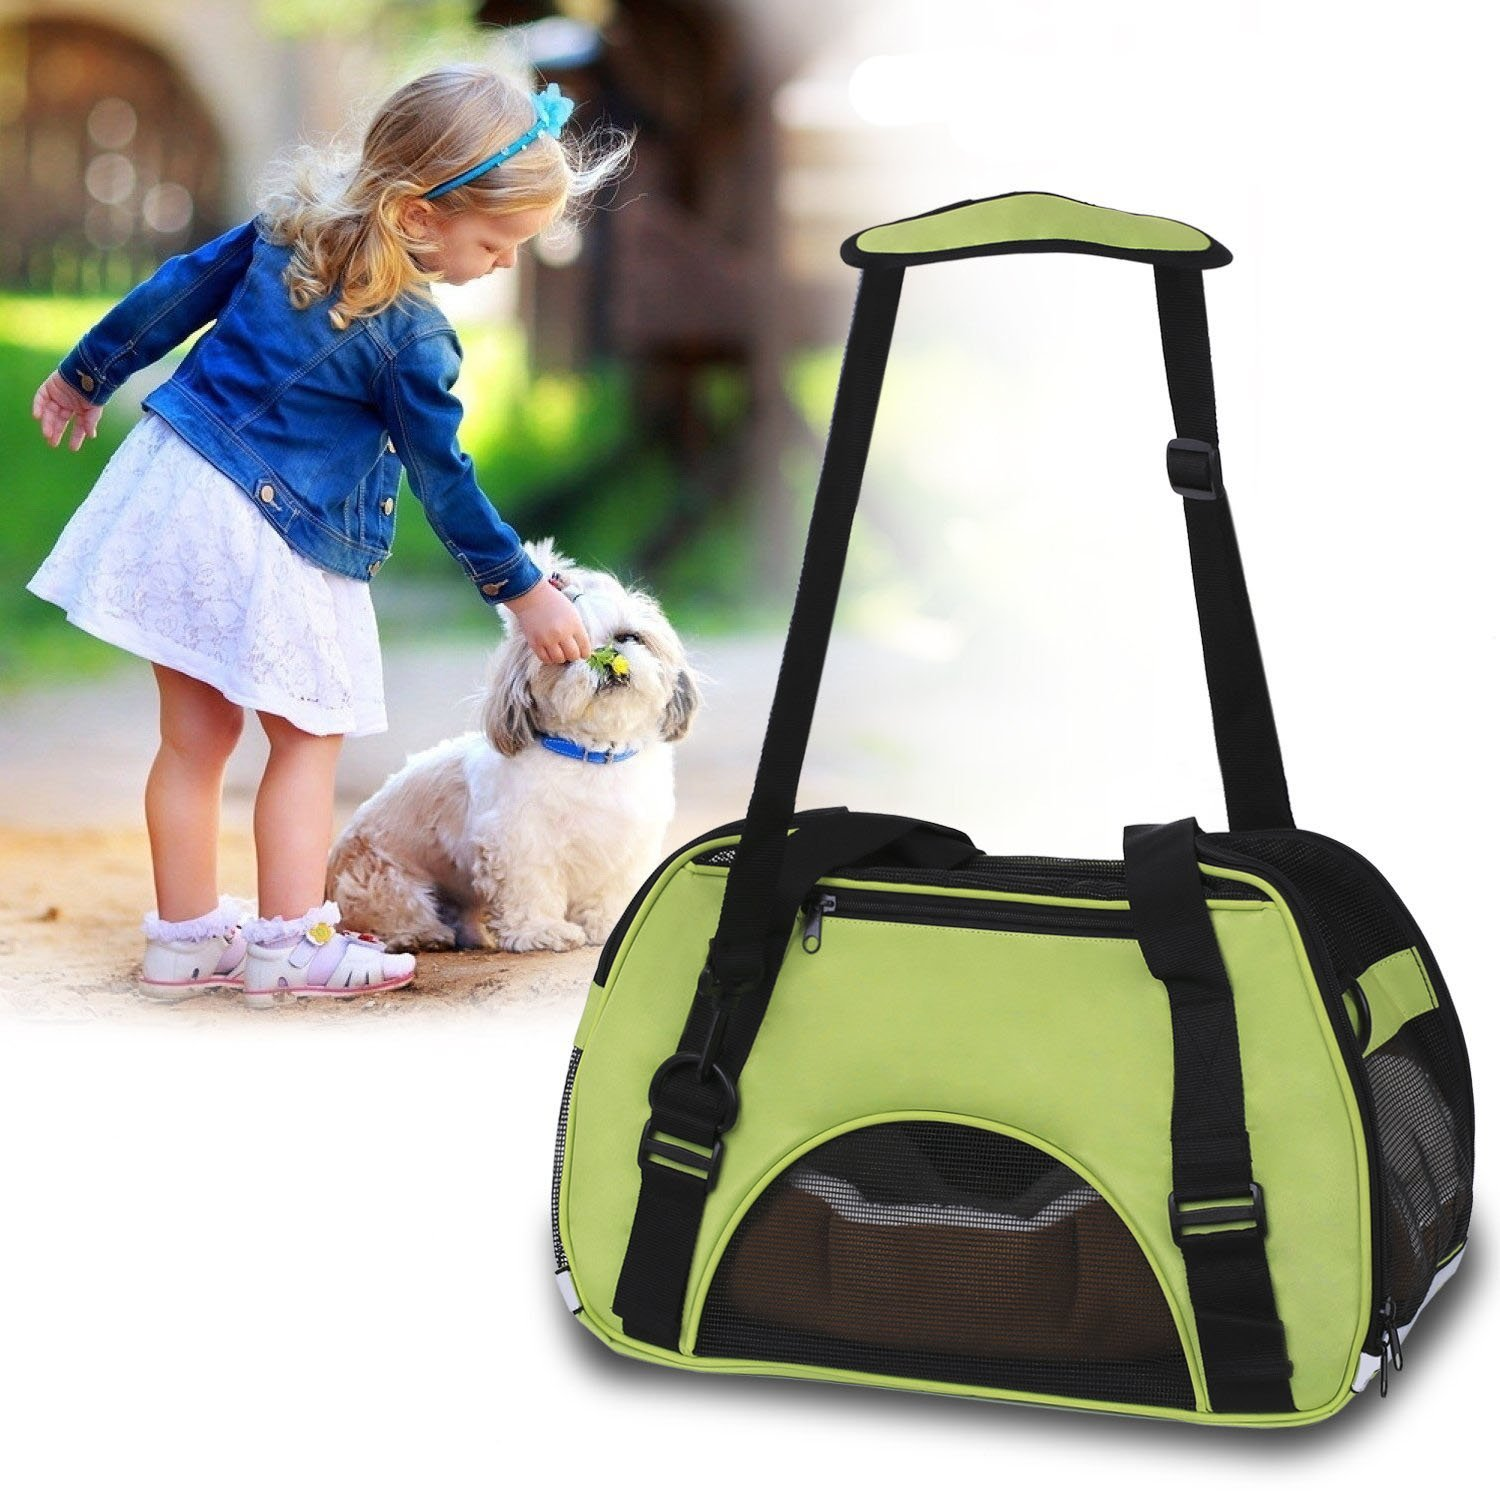 Power Q Pet Carriers Bag Cute Cuisine Breathable Soft-Sided Pet Carrier Cats Dogs Travel Crate Tote Portable Travel Handbag Shoulder Bag Outdoor